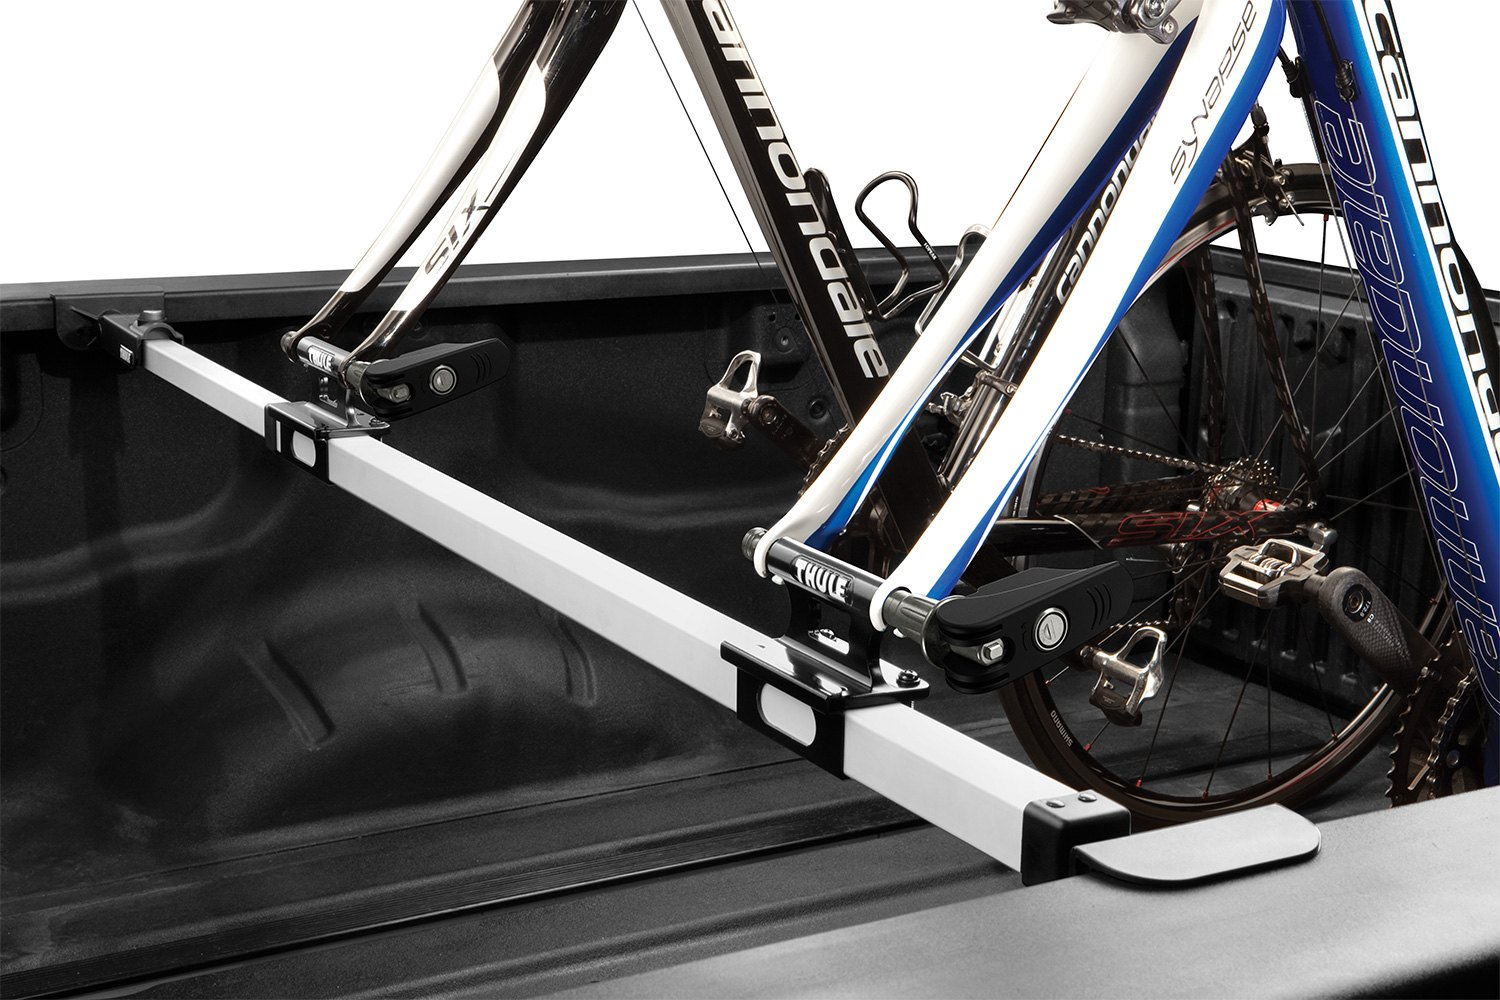 for bike stuff com show racks cars mtbr diy rack truck your bed